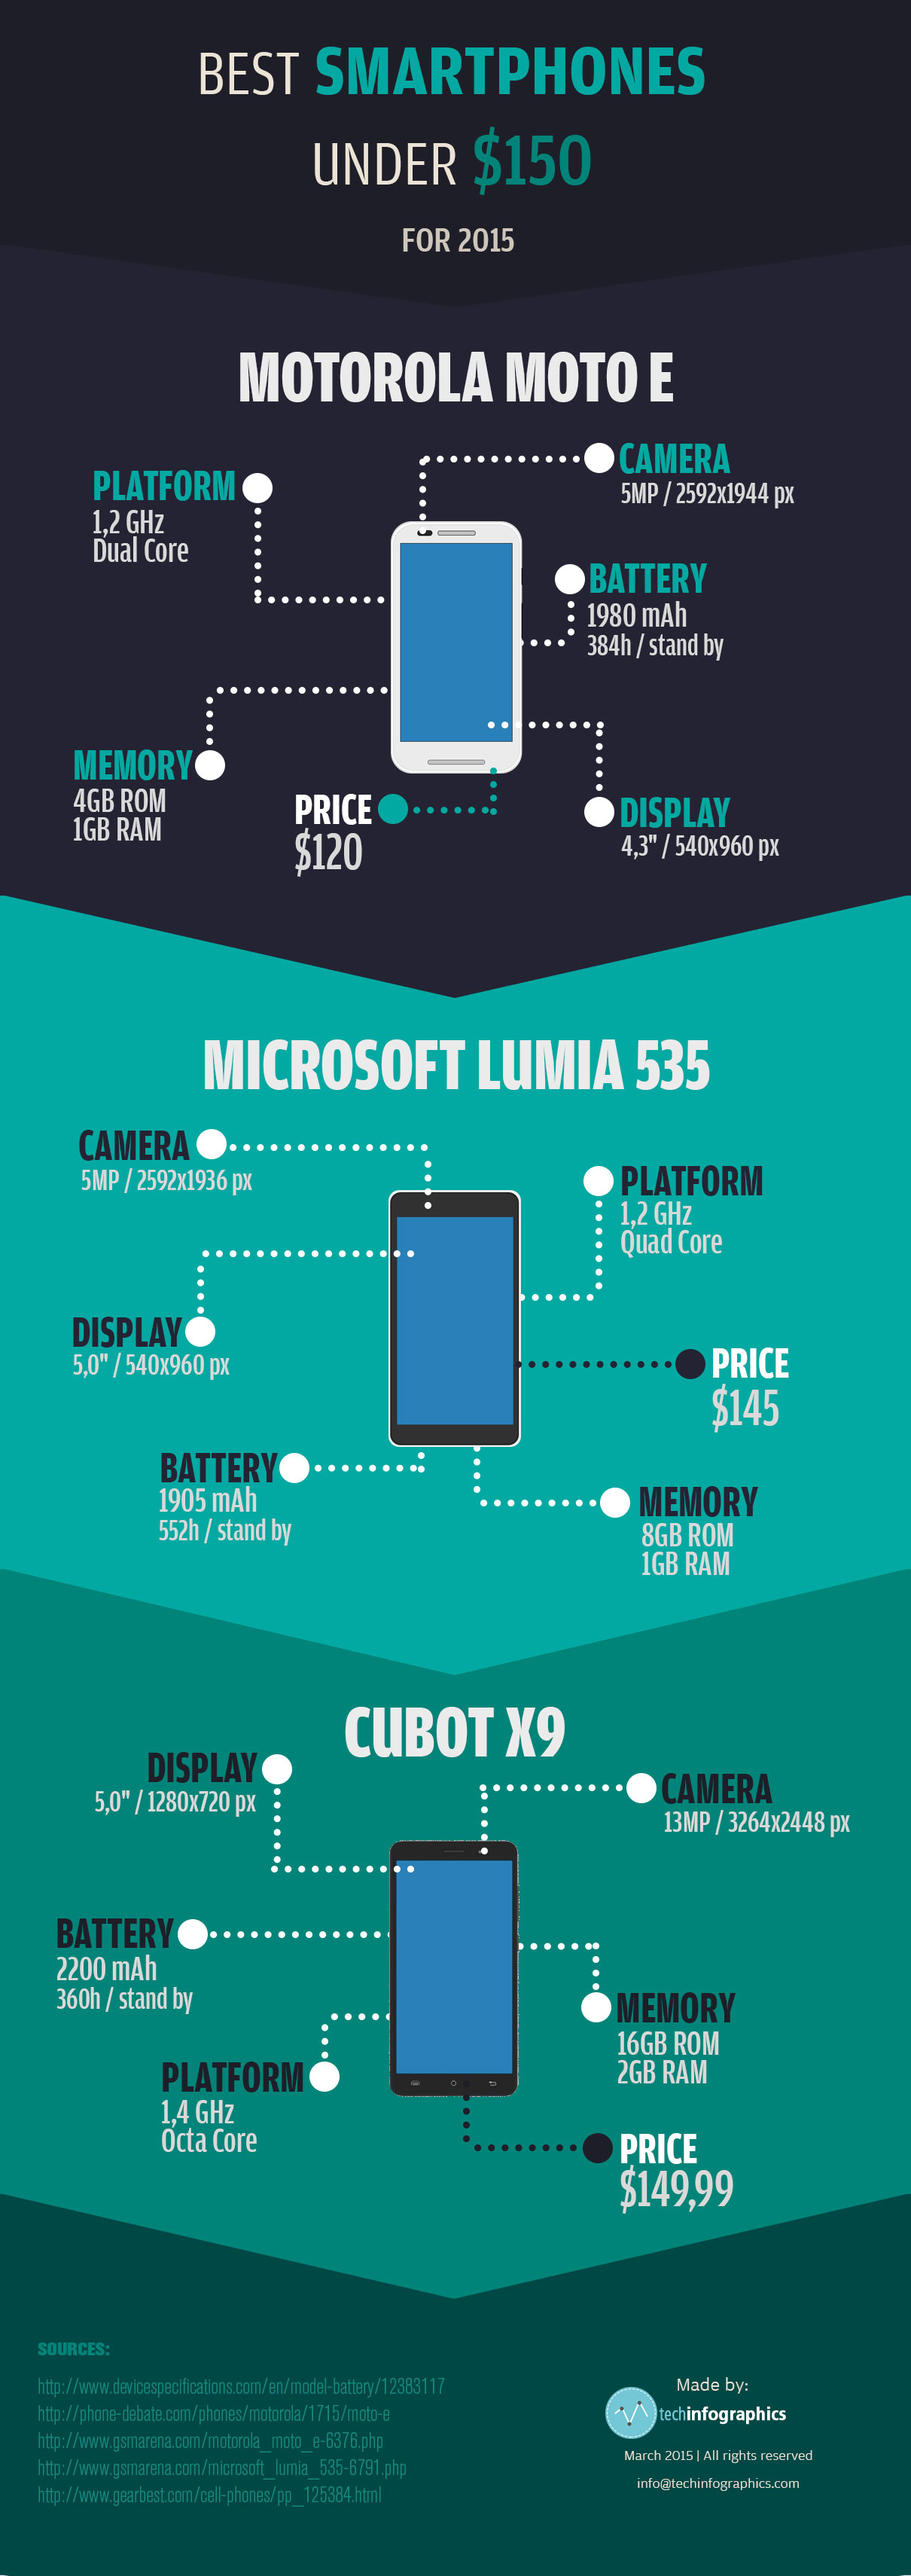 The Best Smartphones Under $150 - Infographic